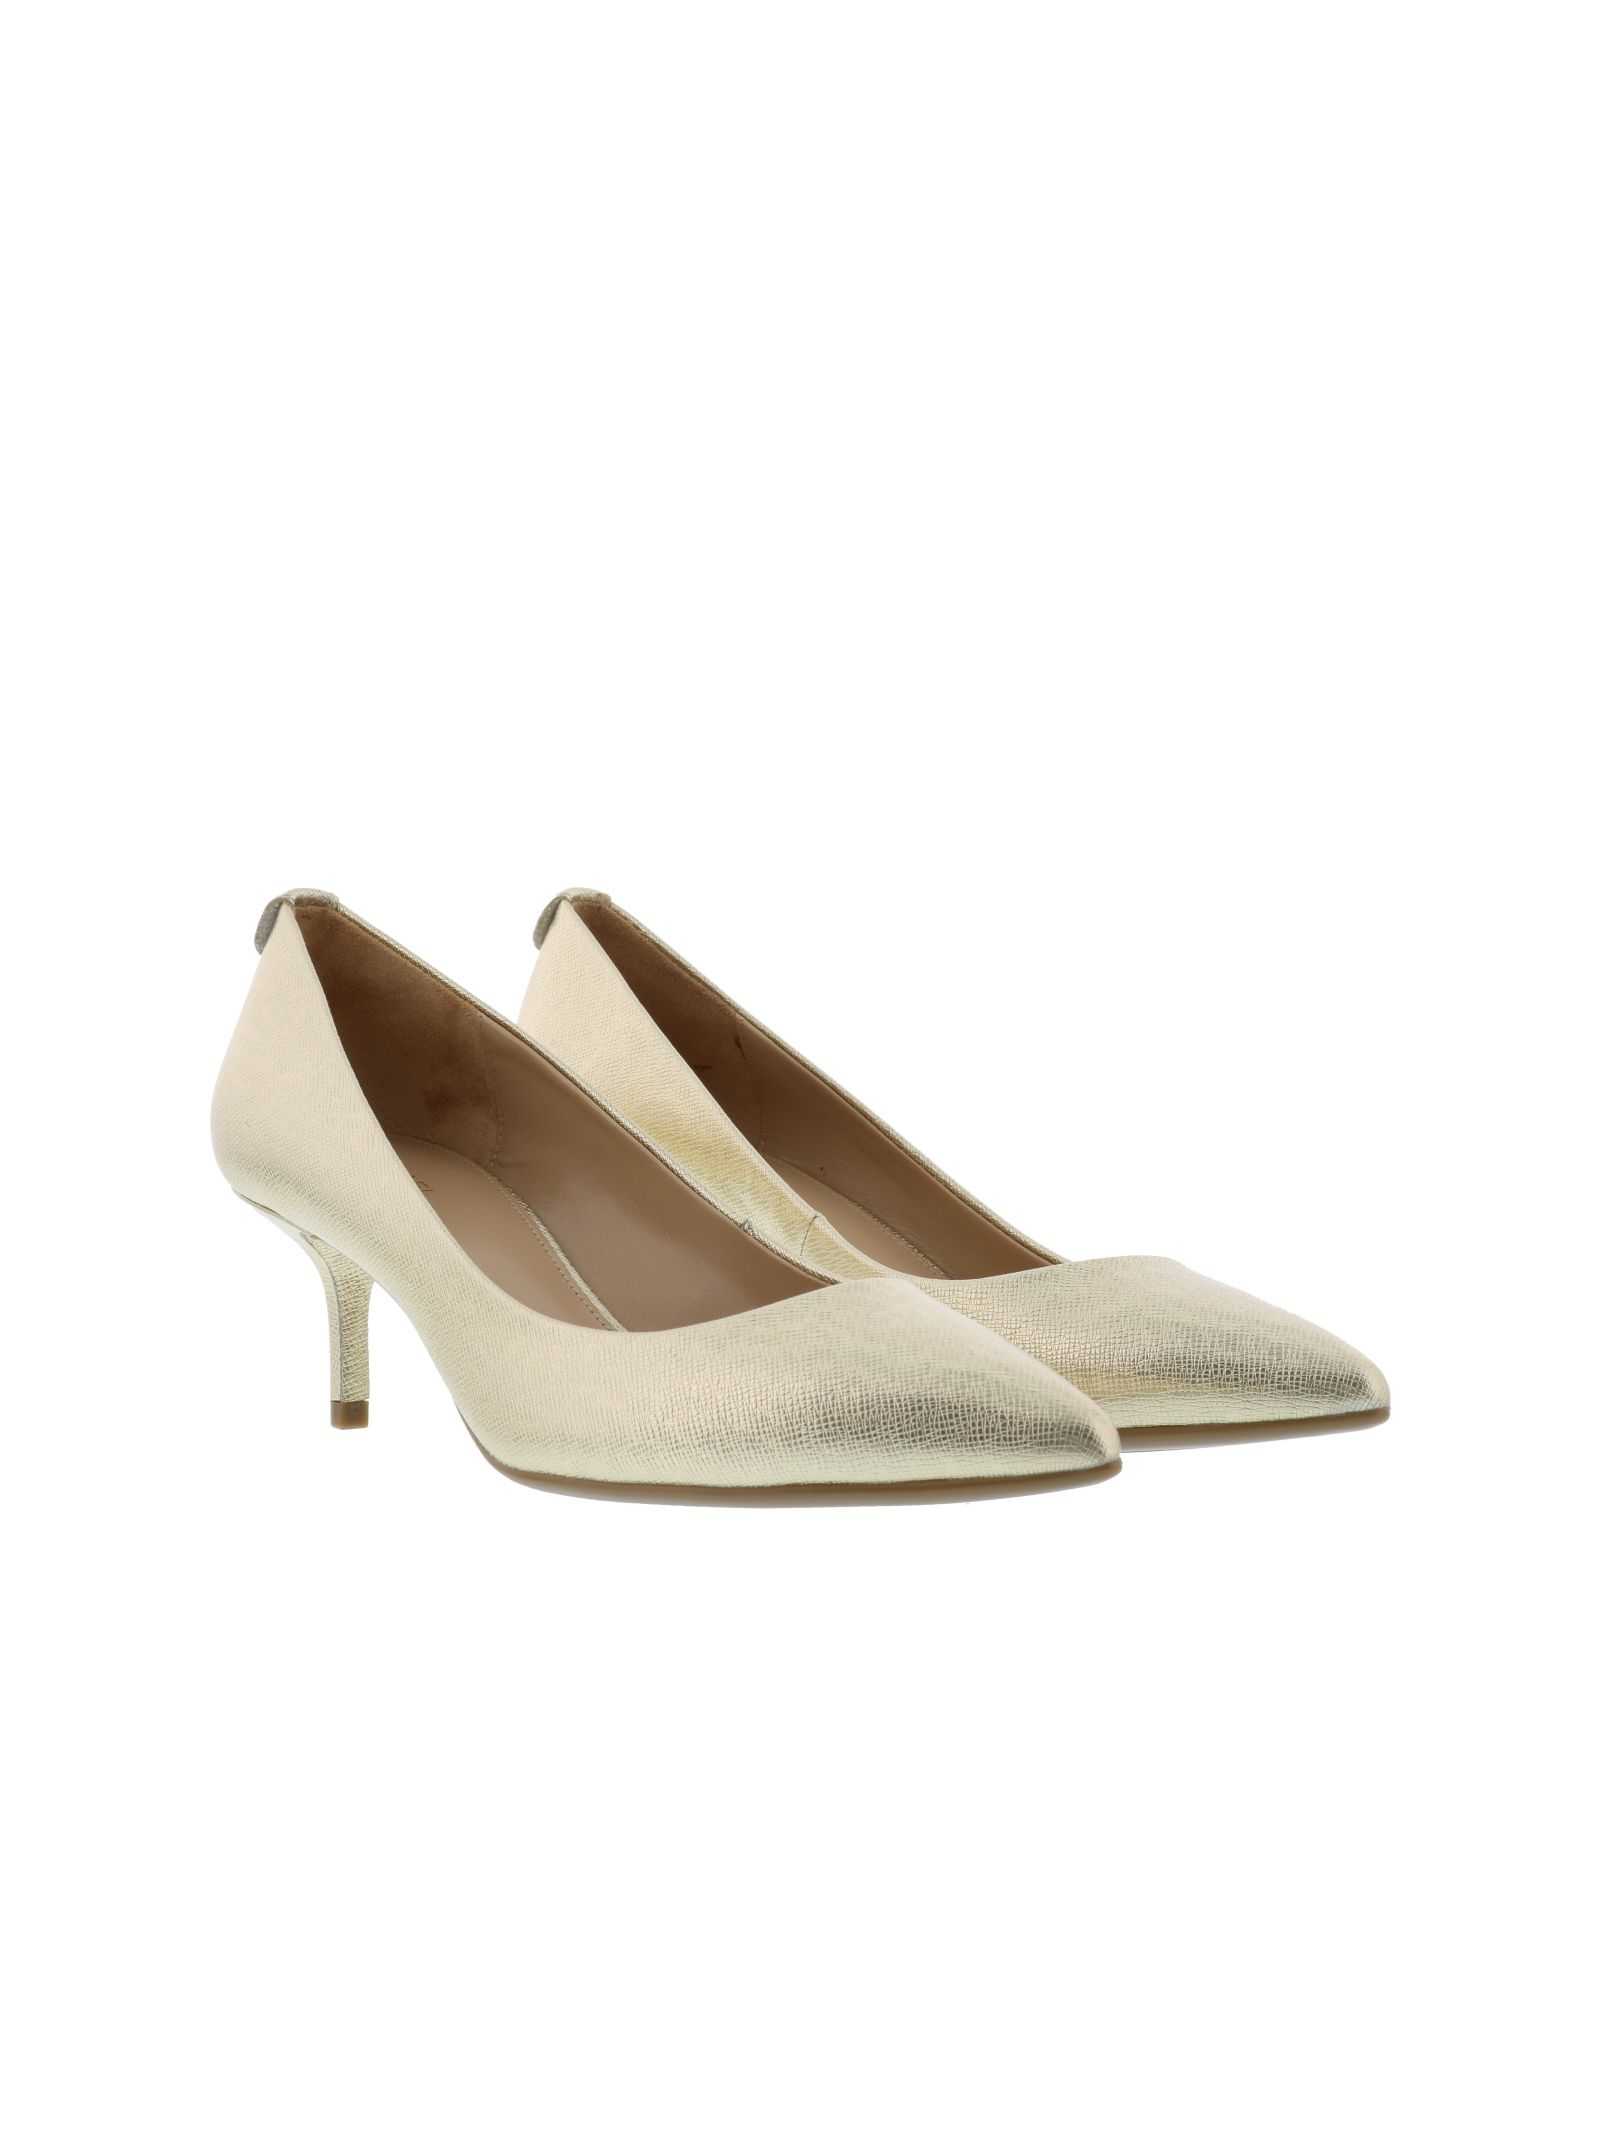 michael kors female michael kors kitten mid pumps